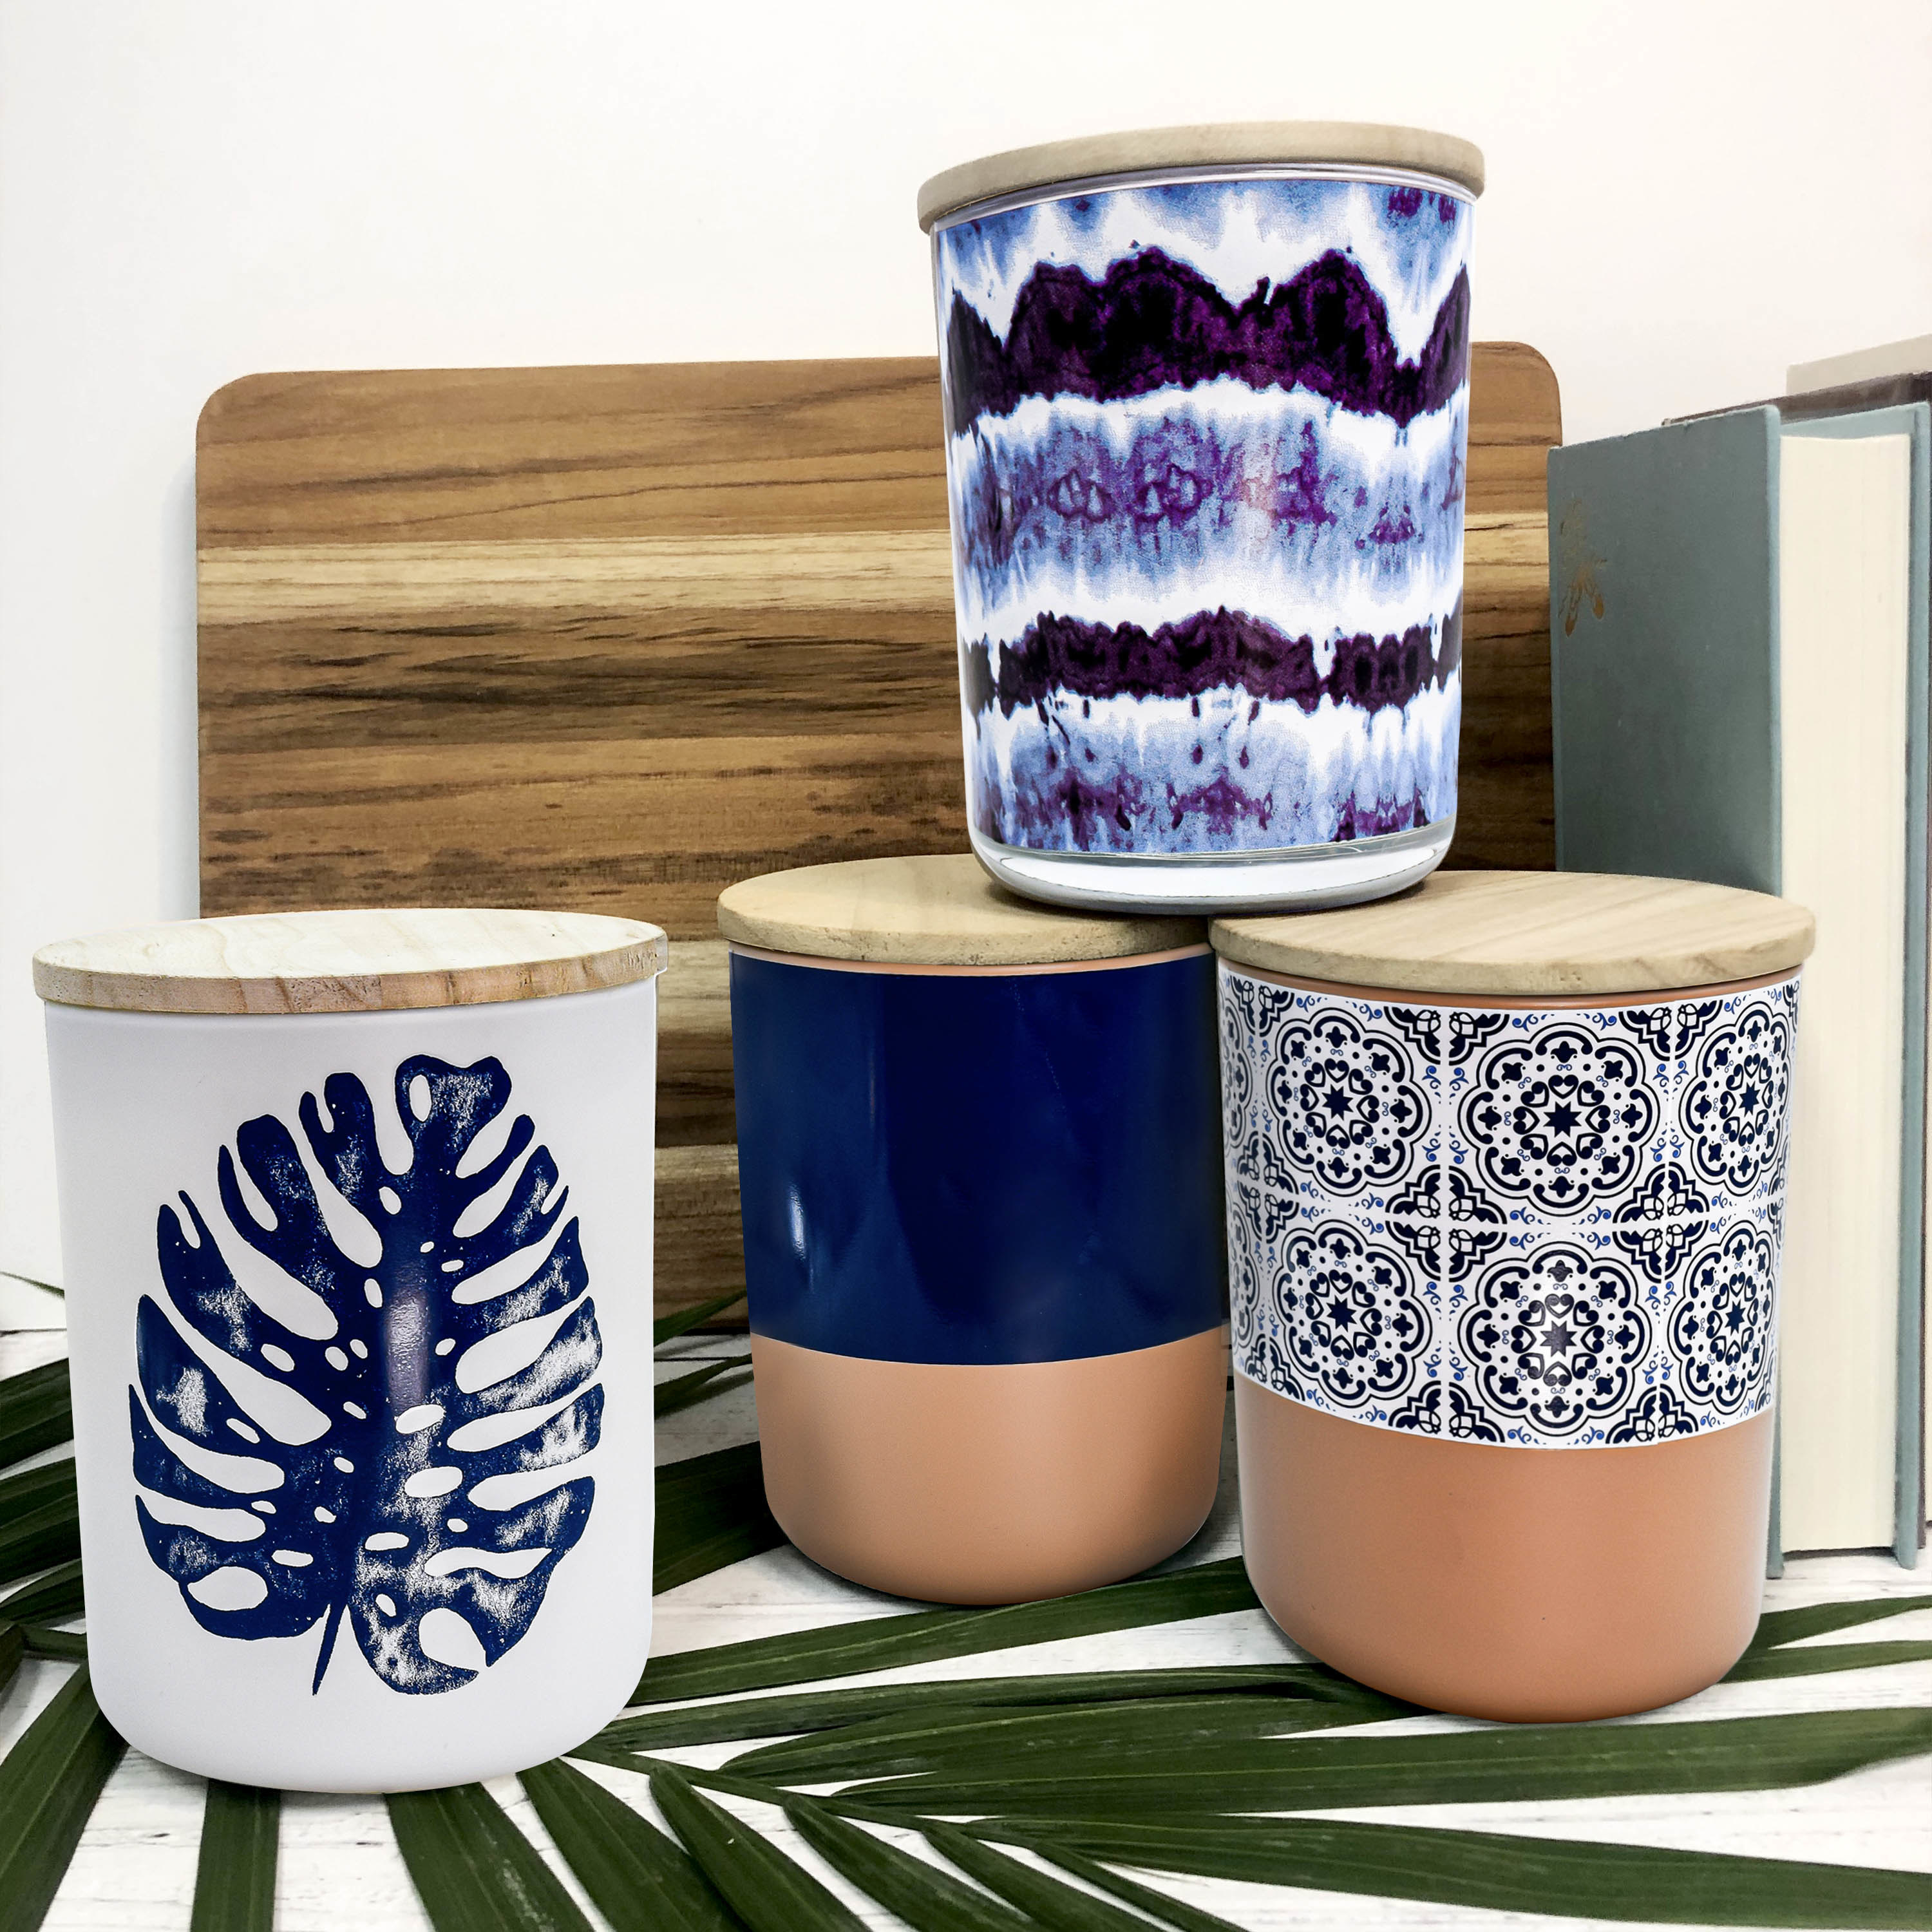 Candles with pink and blue patterns